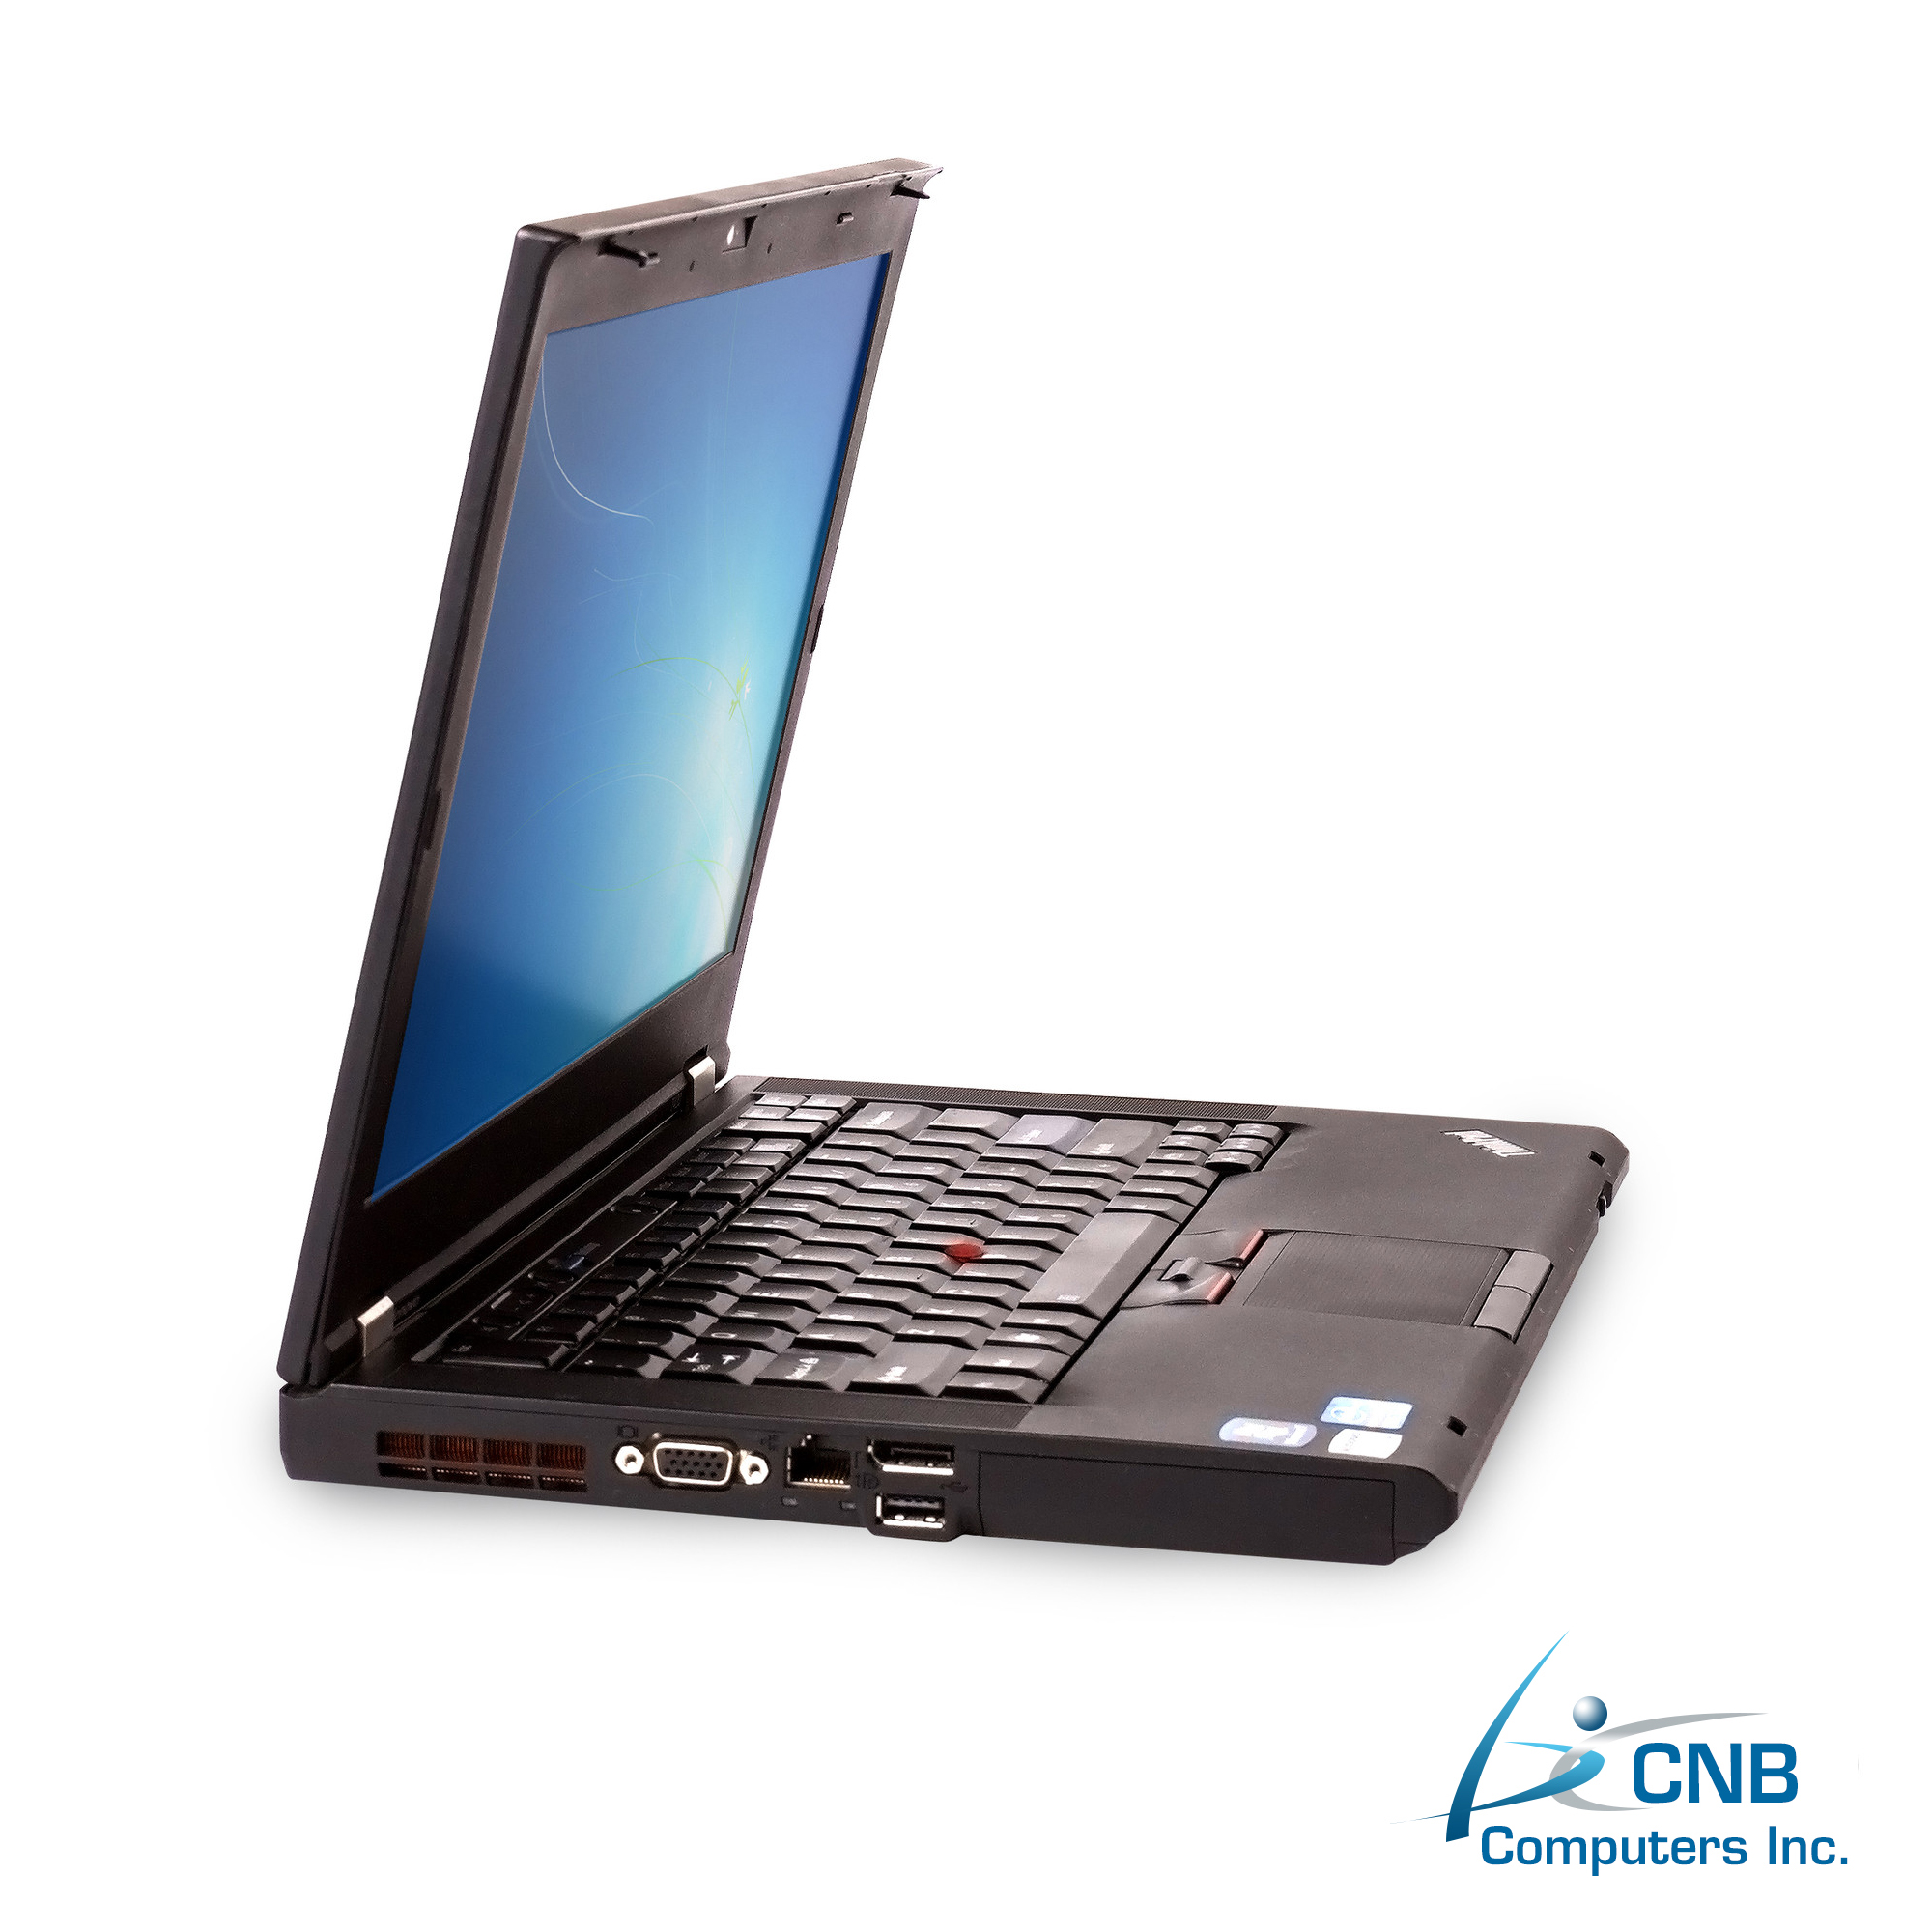 LENOVO THINKPAD T420 LAPTOP, 4GB, 250GB HDD, INTEL i5 2520M 2 5GHz | CNB